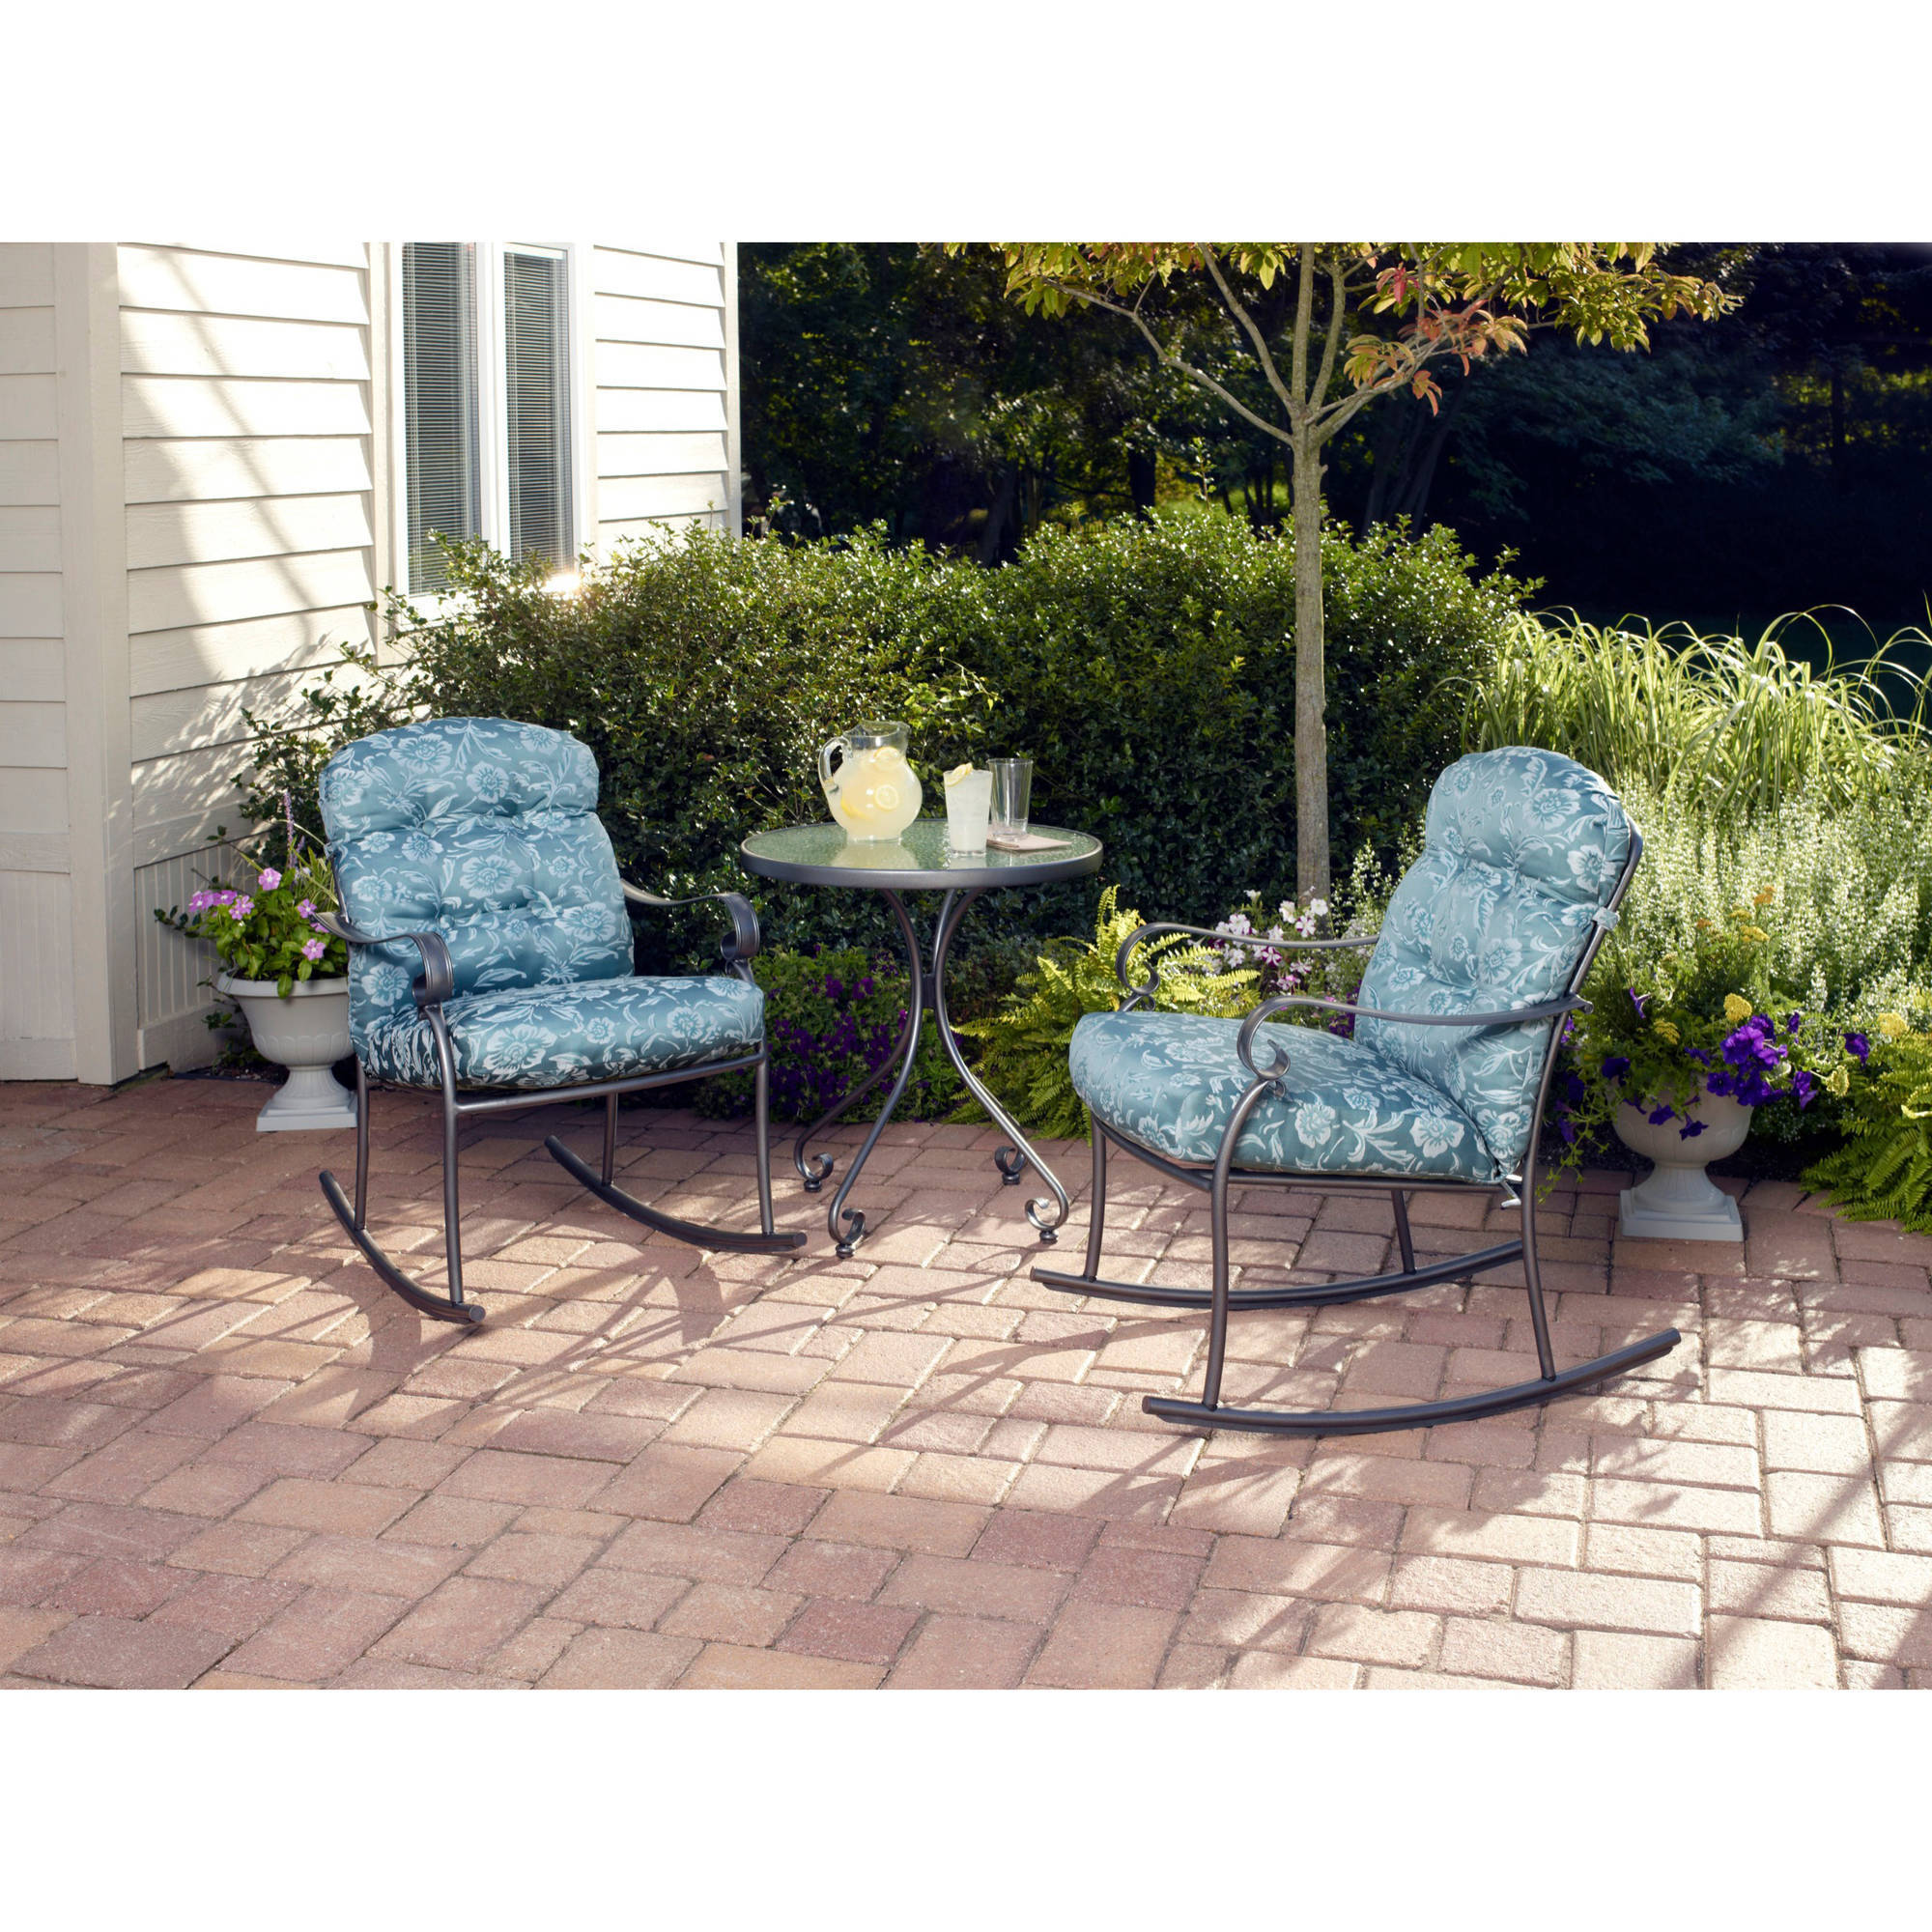 Mainstays Willow Springs 3 Piece Rocking Outdoor Bistro Set Seats 2